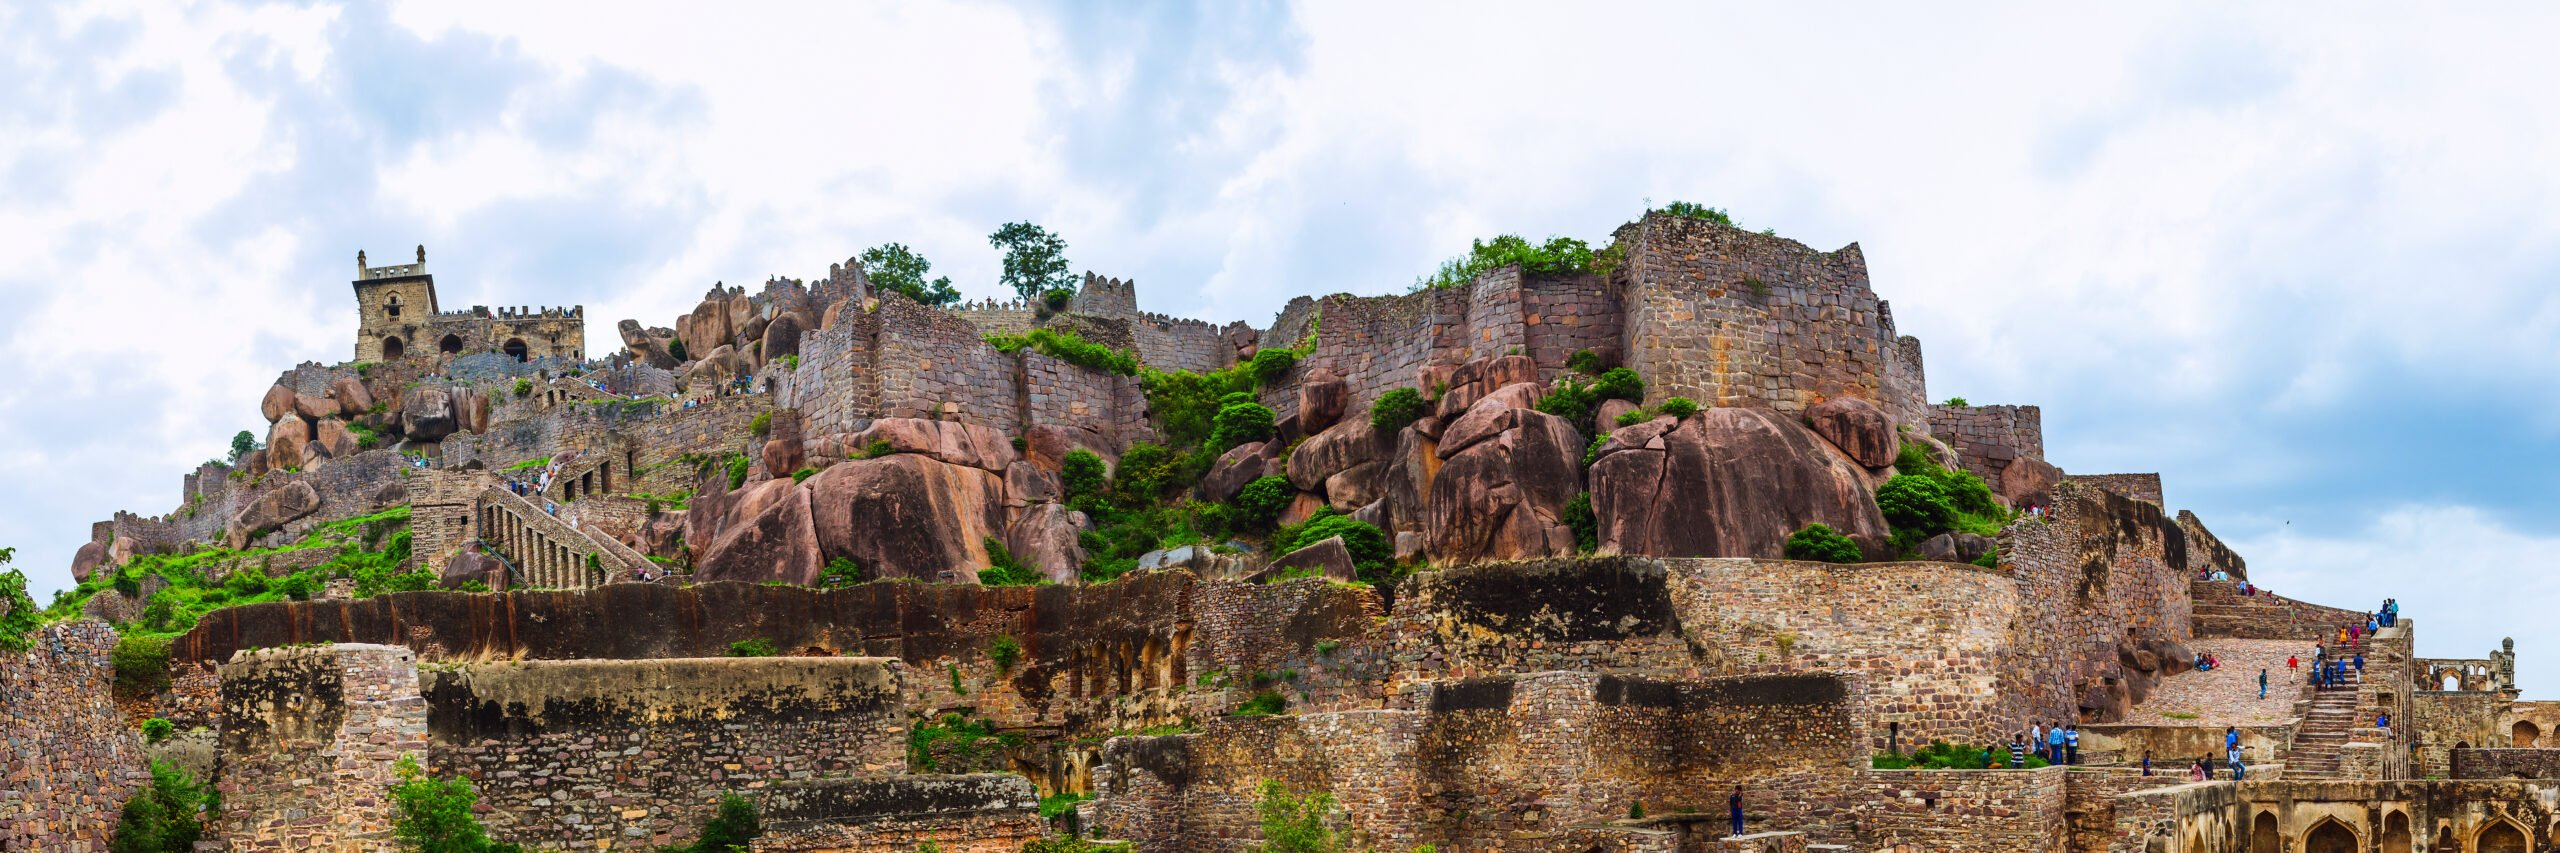 Explore The History Of Golconda Fort In Our Hyderabad City Day Tour